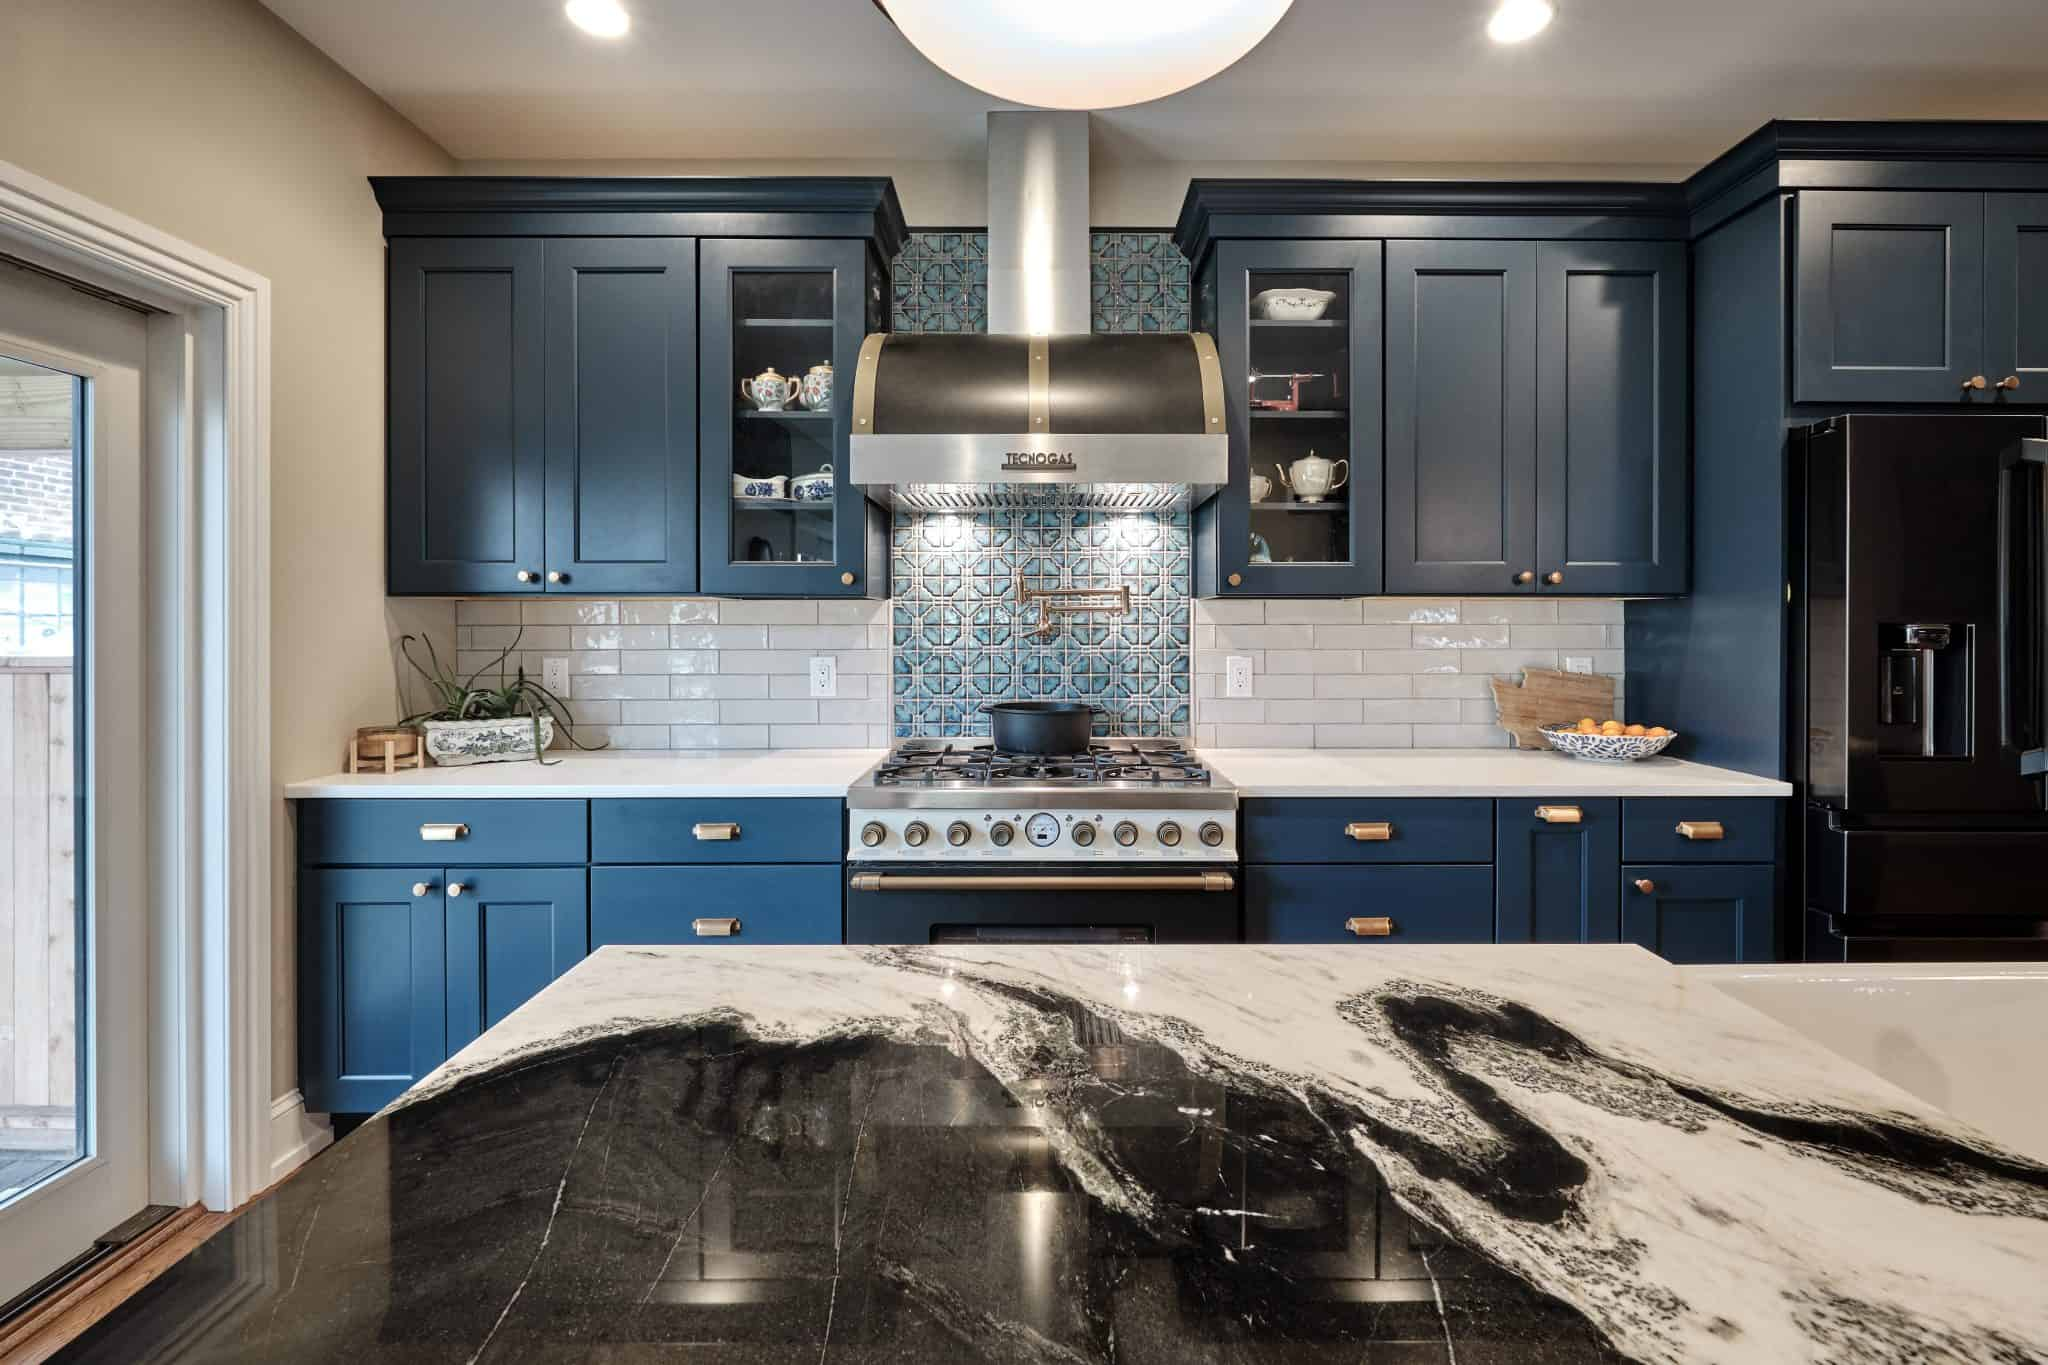 What Does It Take to Remodel a Home?